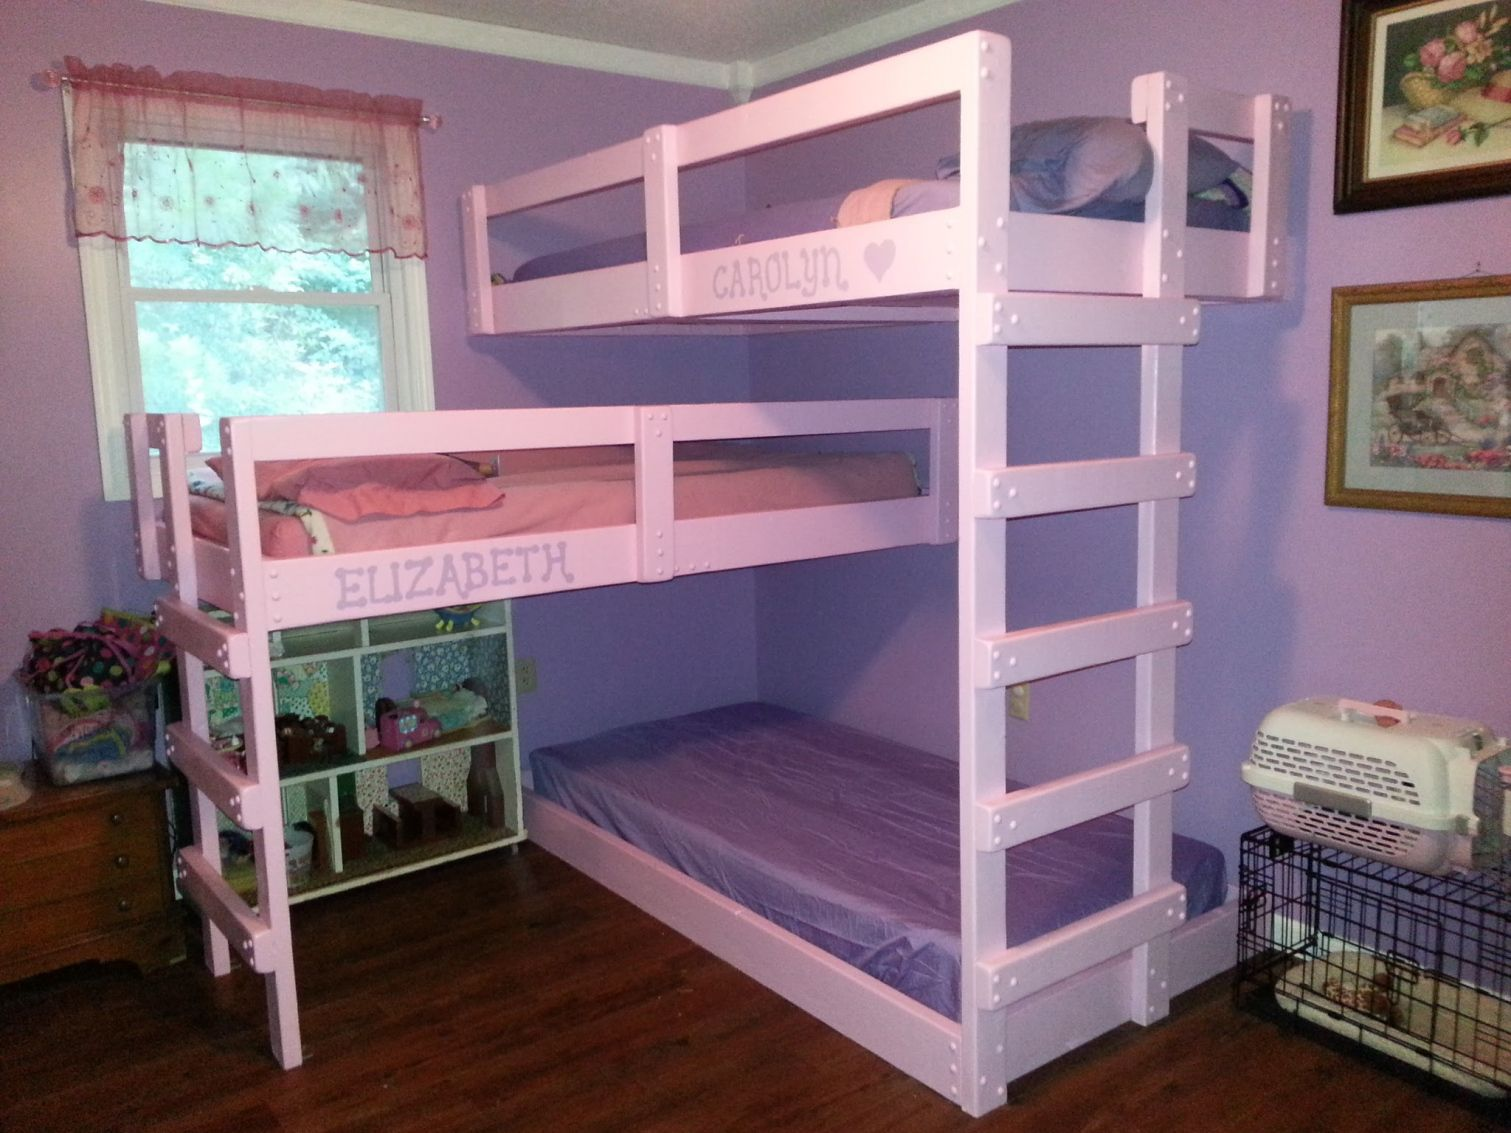 AuBergewohnlich 30 Bunk Beds For Small Rooms   Interior Bedroom Paint Colors Check More At  Http://billiepiperfan.com/bunk Beds For Small Rooms/